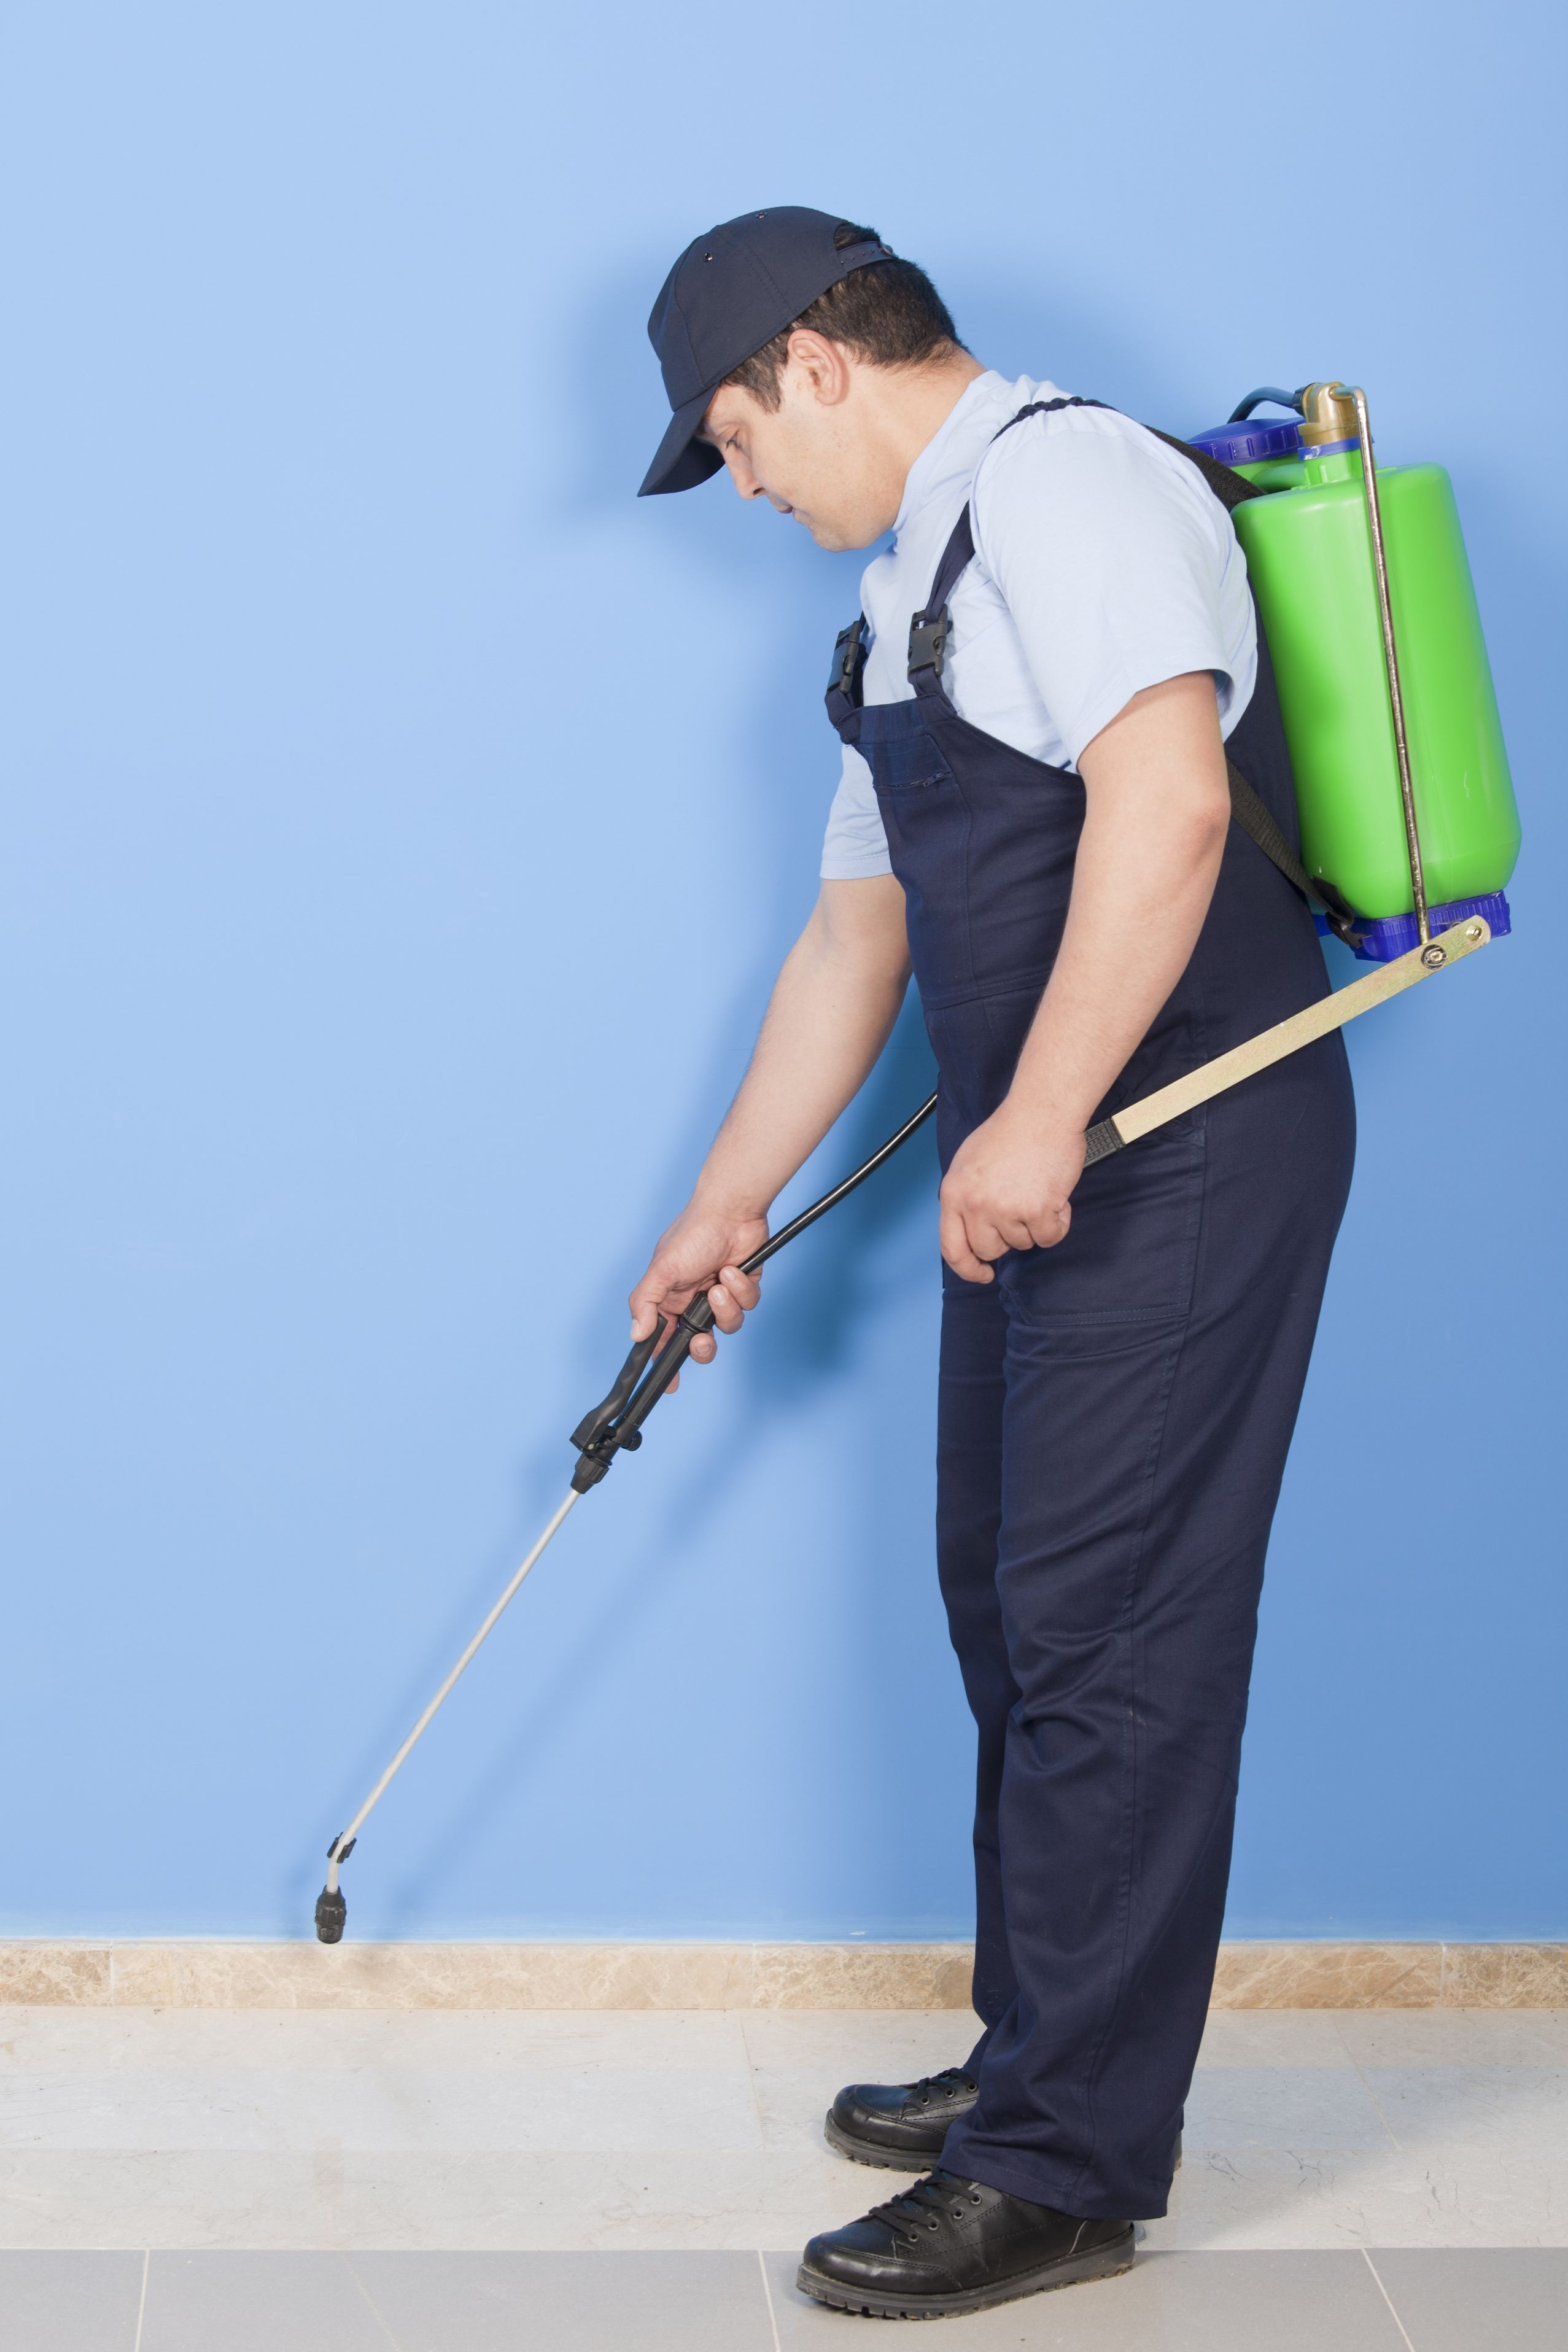 11 Tips on Finding a Reputable Pest Management Company